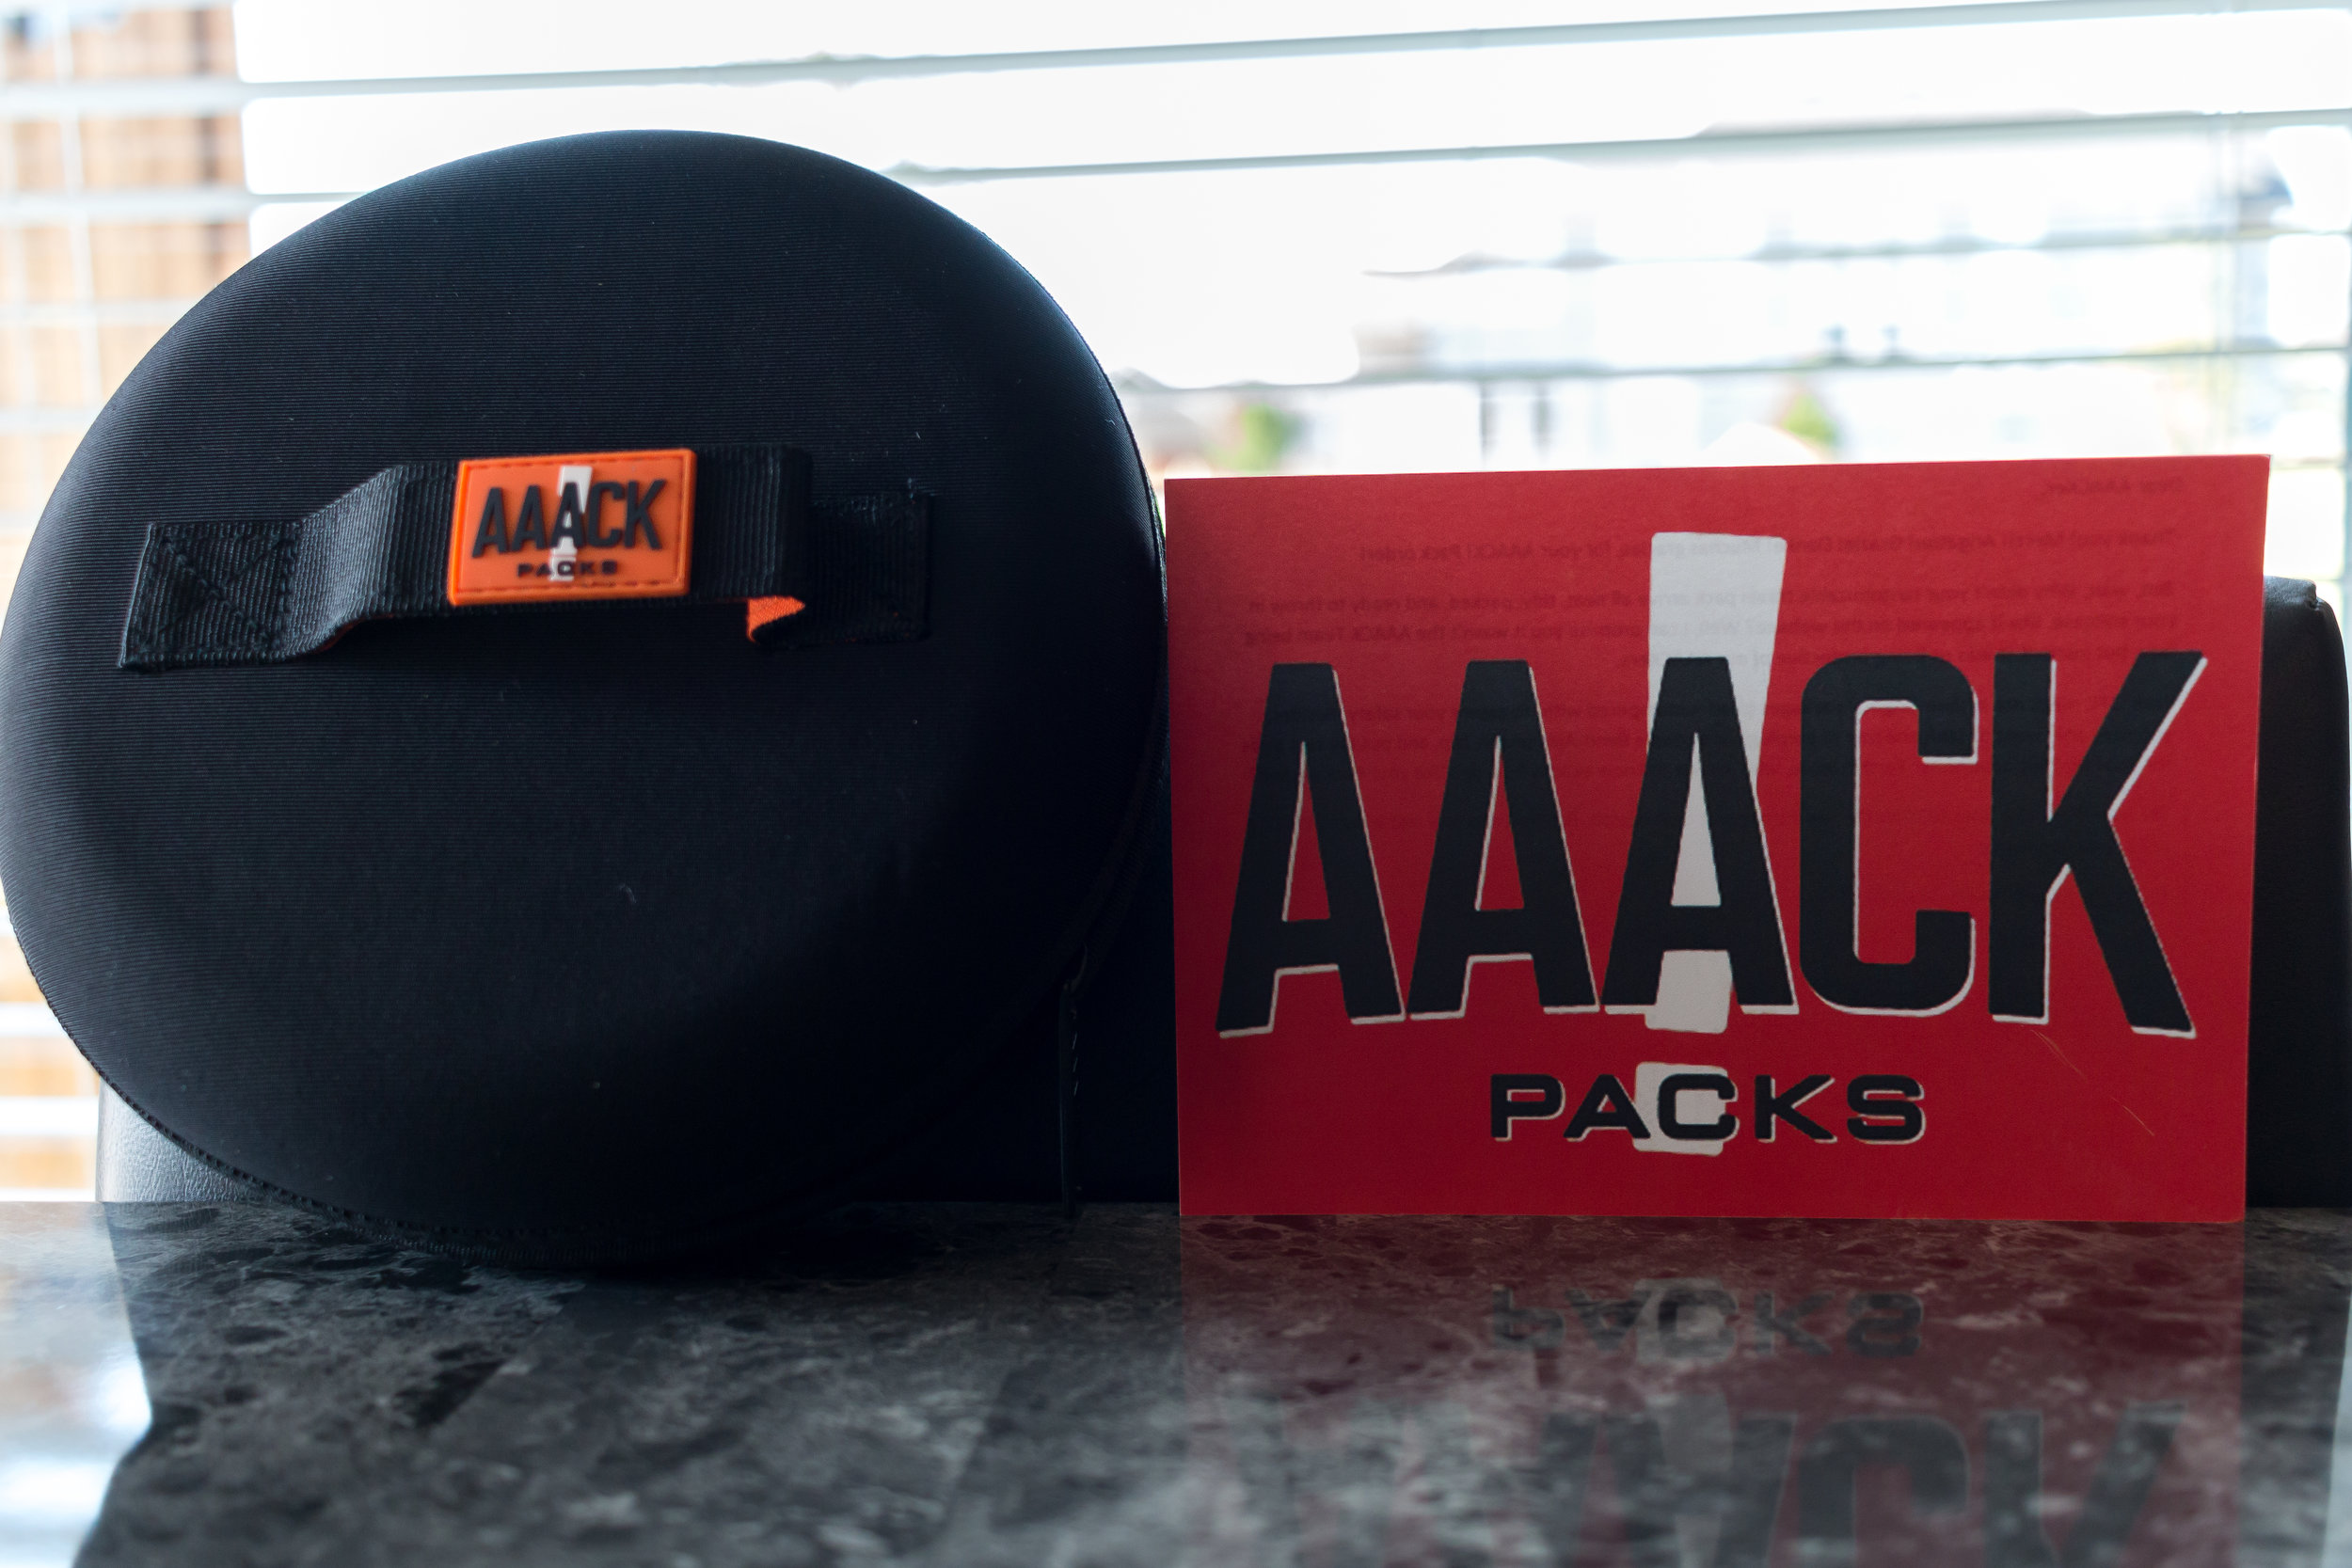 aaack-pack-collapsible-pod